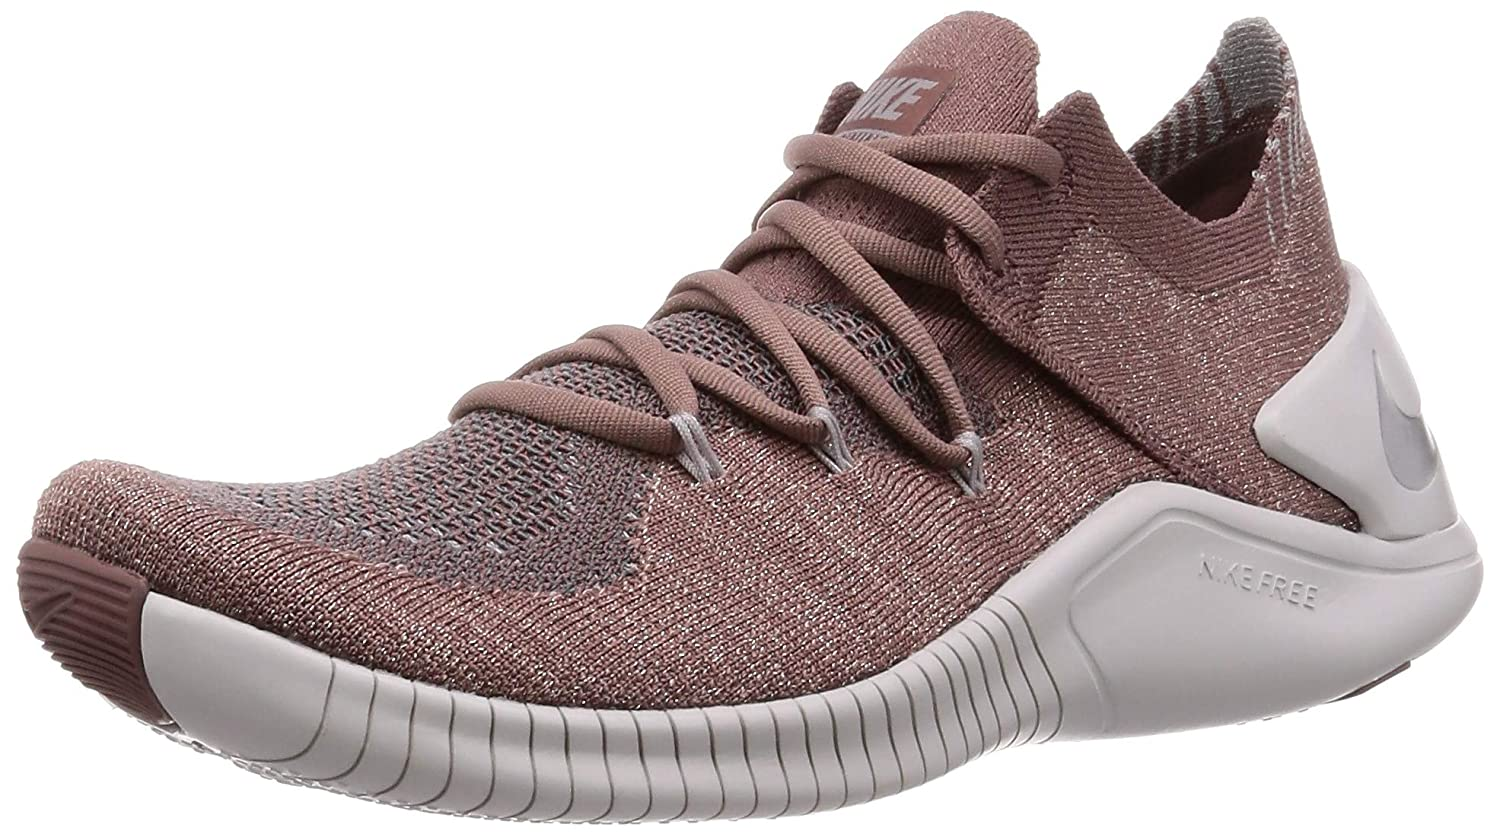 Nike Free TR Flyknit 3 Leather Review (Sep 2019) RunRepeat  Nike Women's Free TR Flyknit 3 Training Shoe